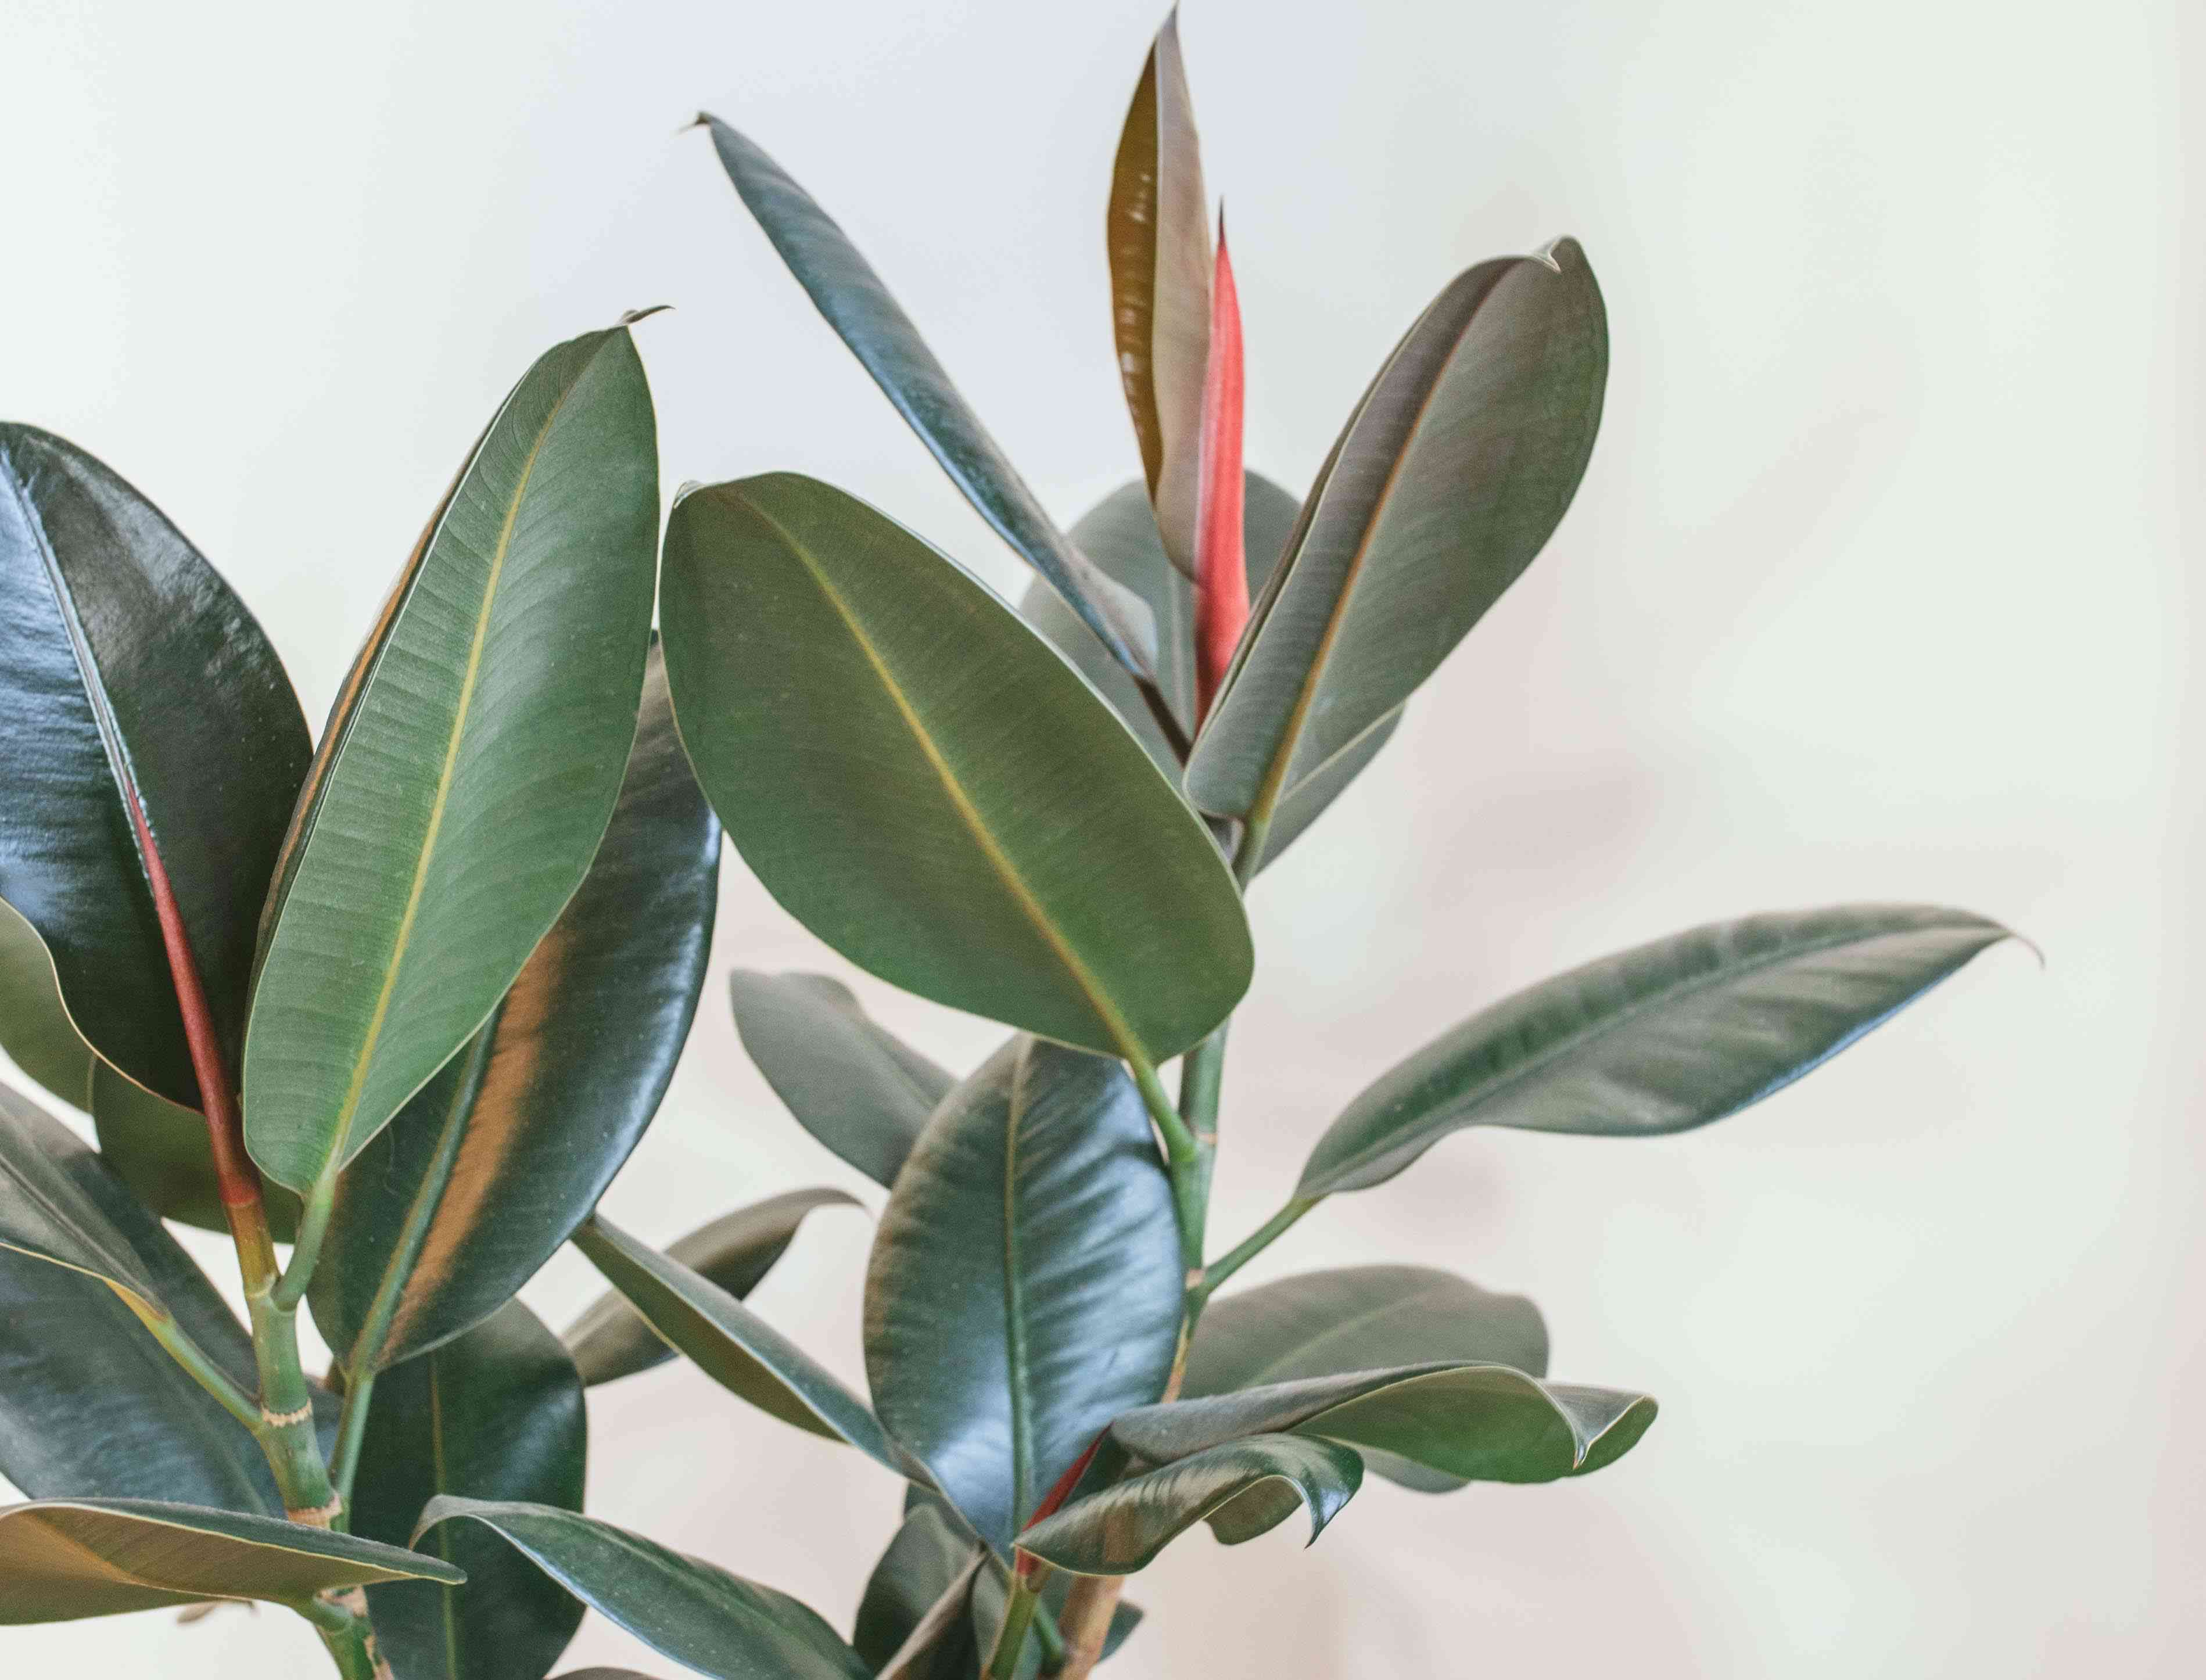 shiny bright green rubber plant against matte white wall